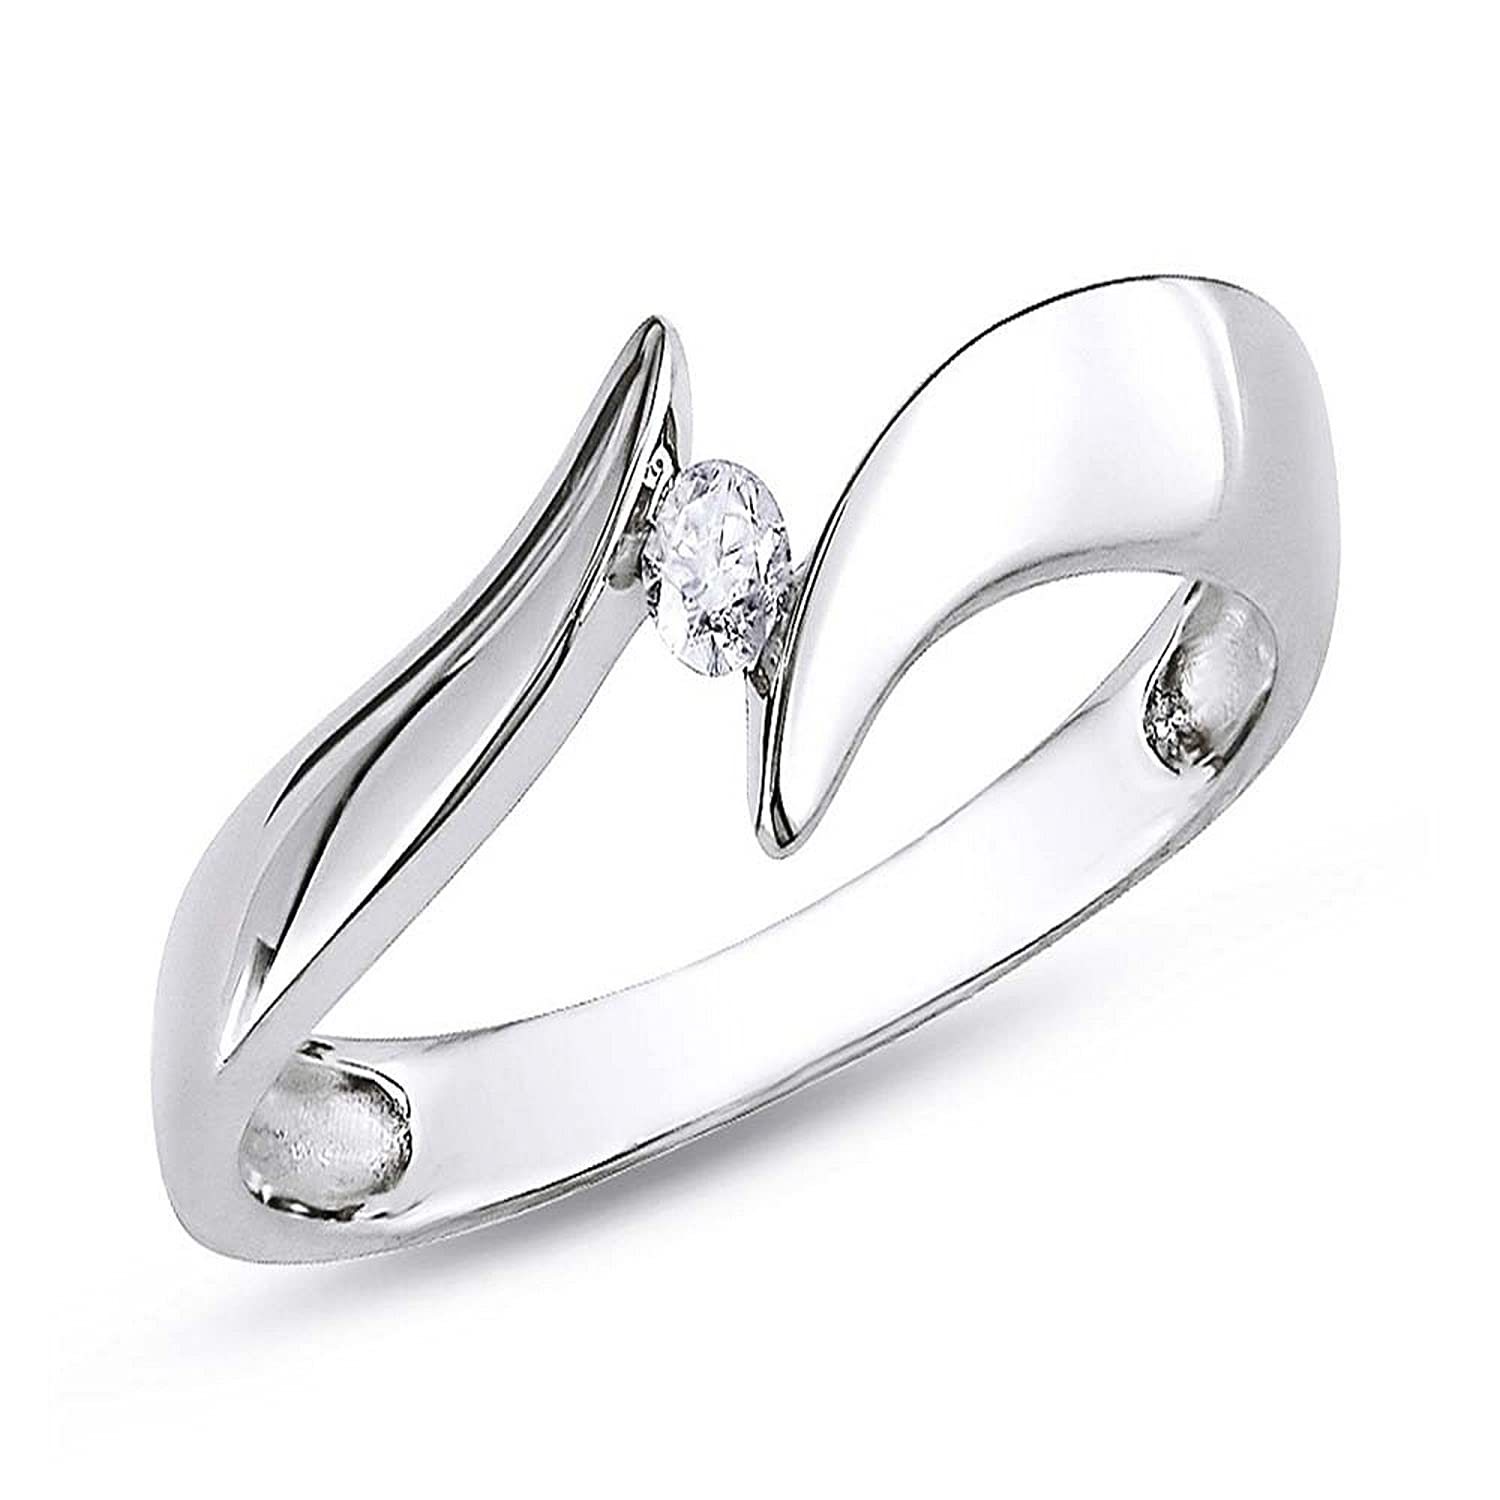 steven set diamond ring rings turgeon product raine tension daimond kretchmer